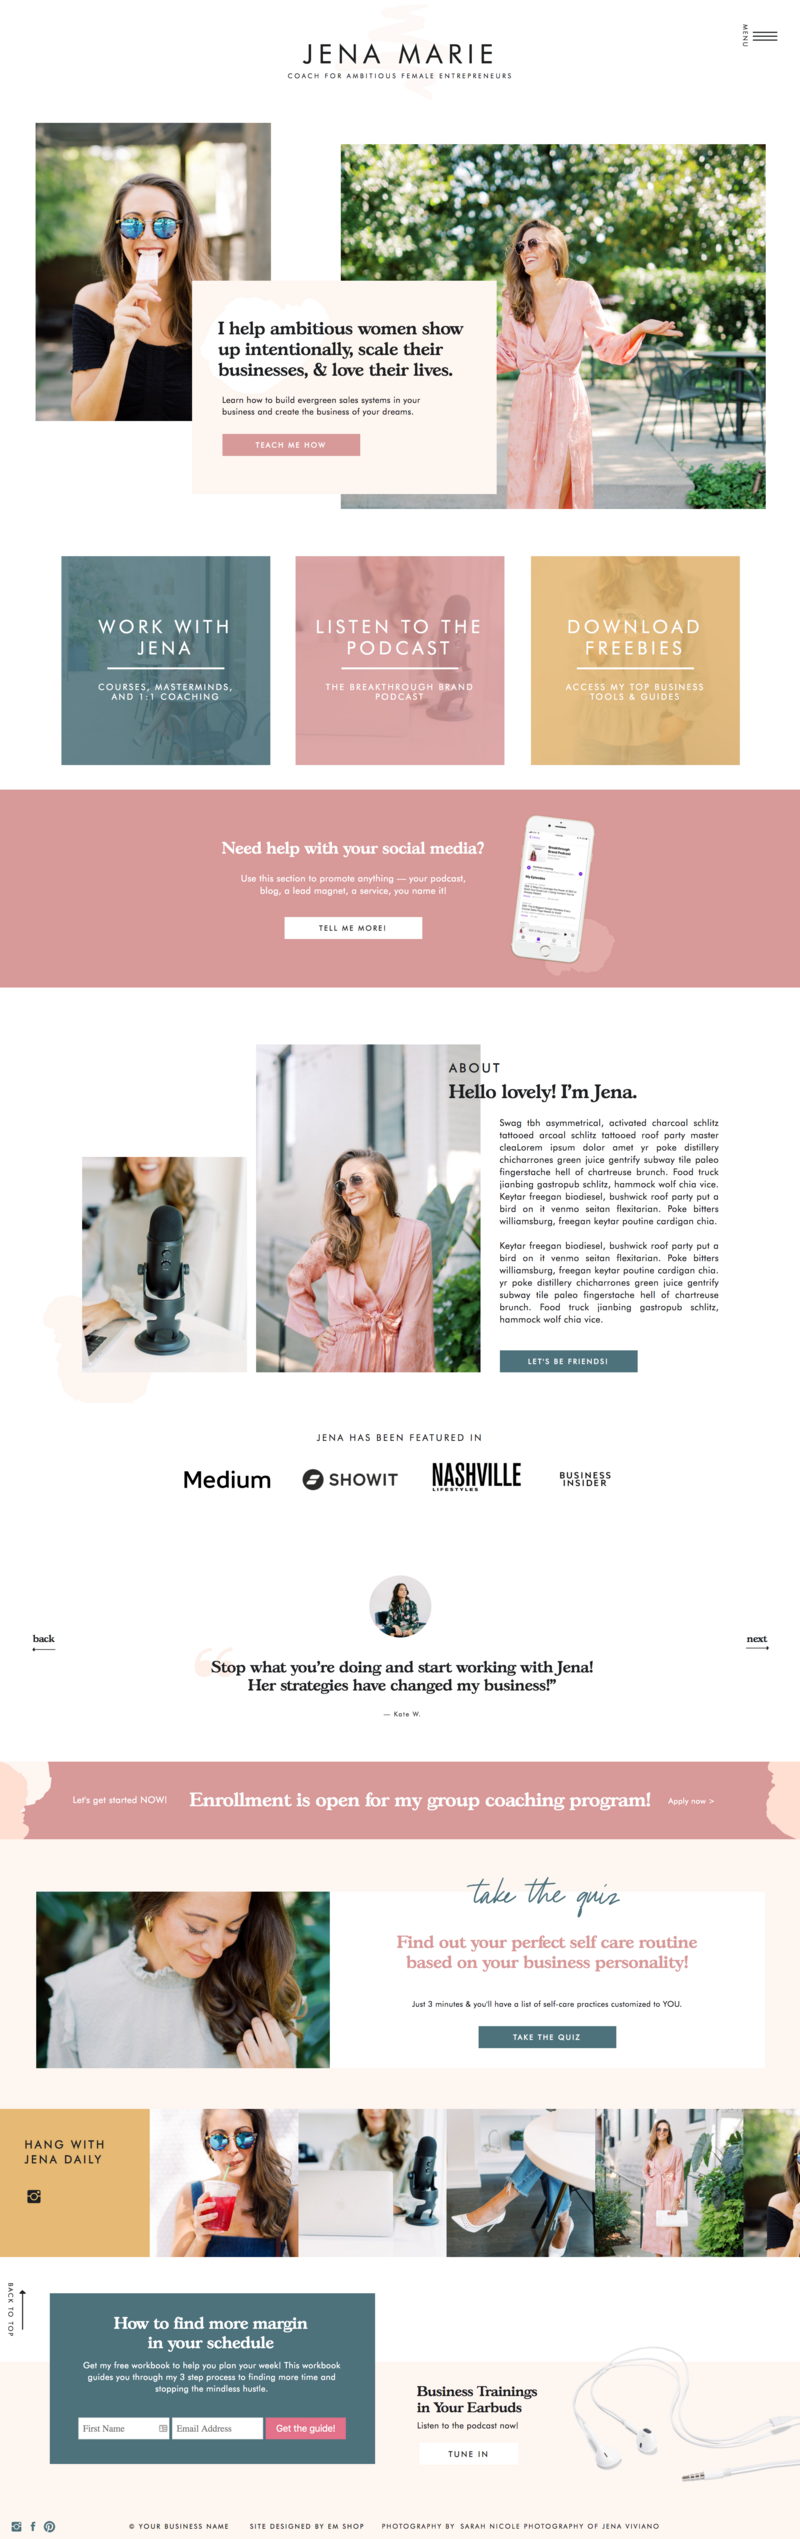 Showit-Podcast-Template-Em-Shop